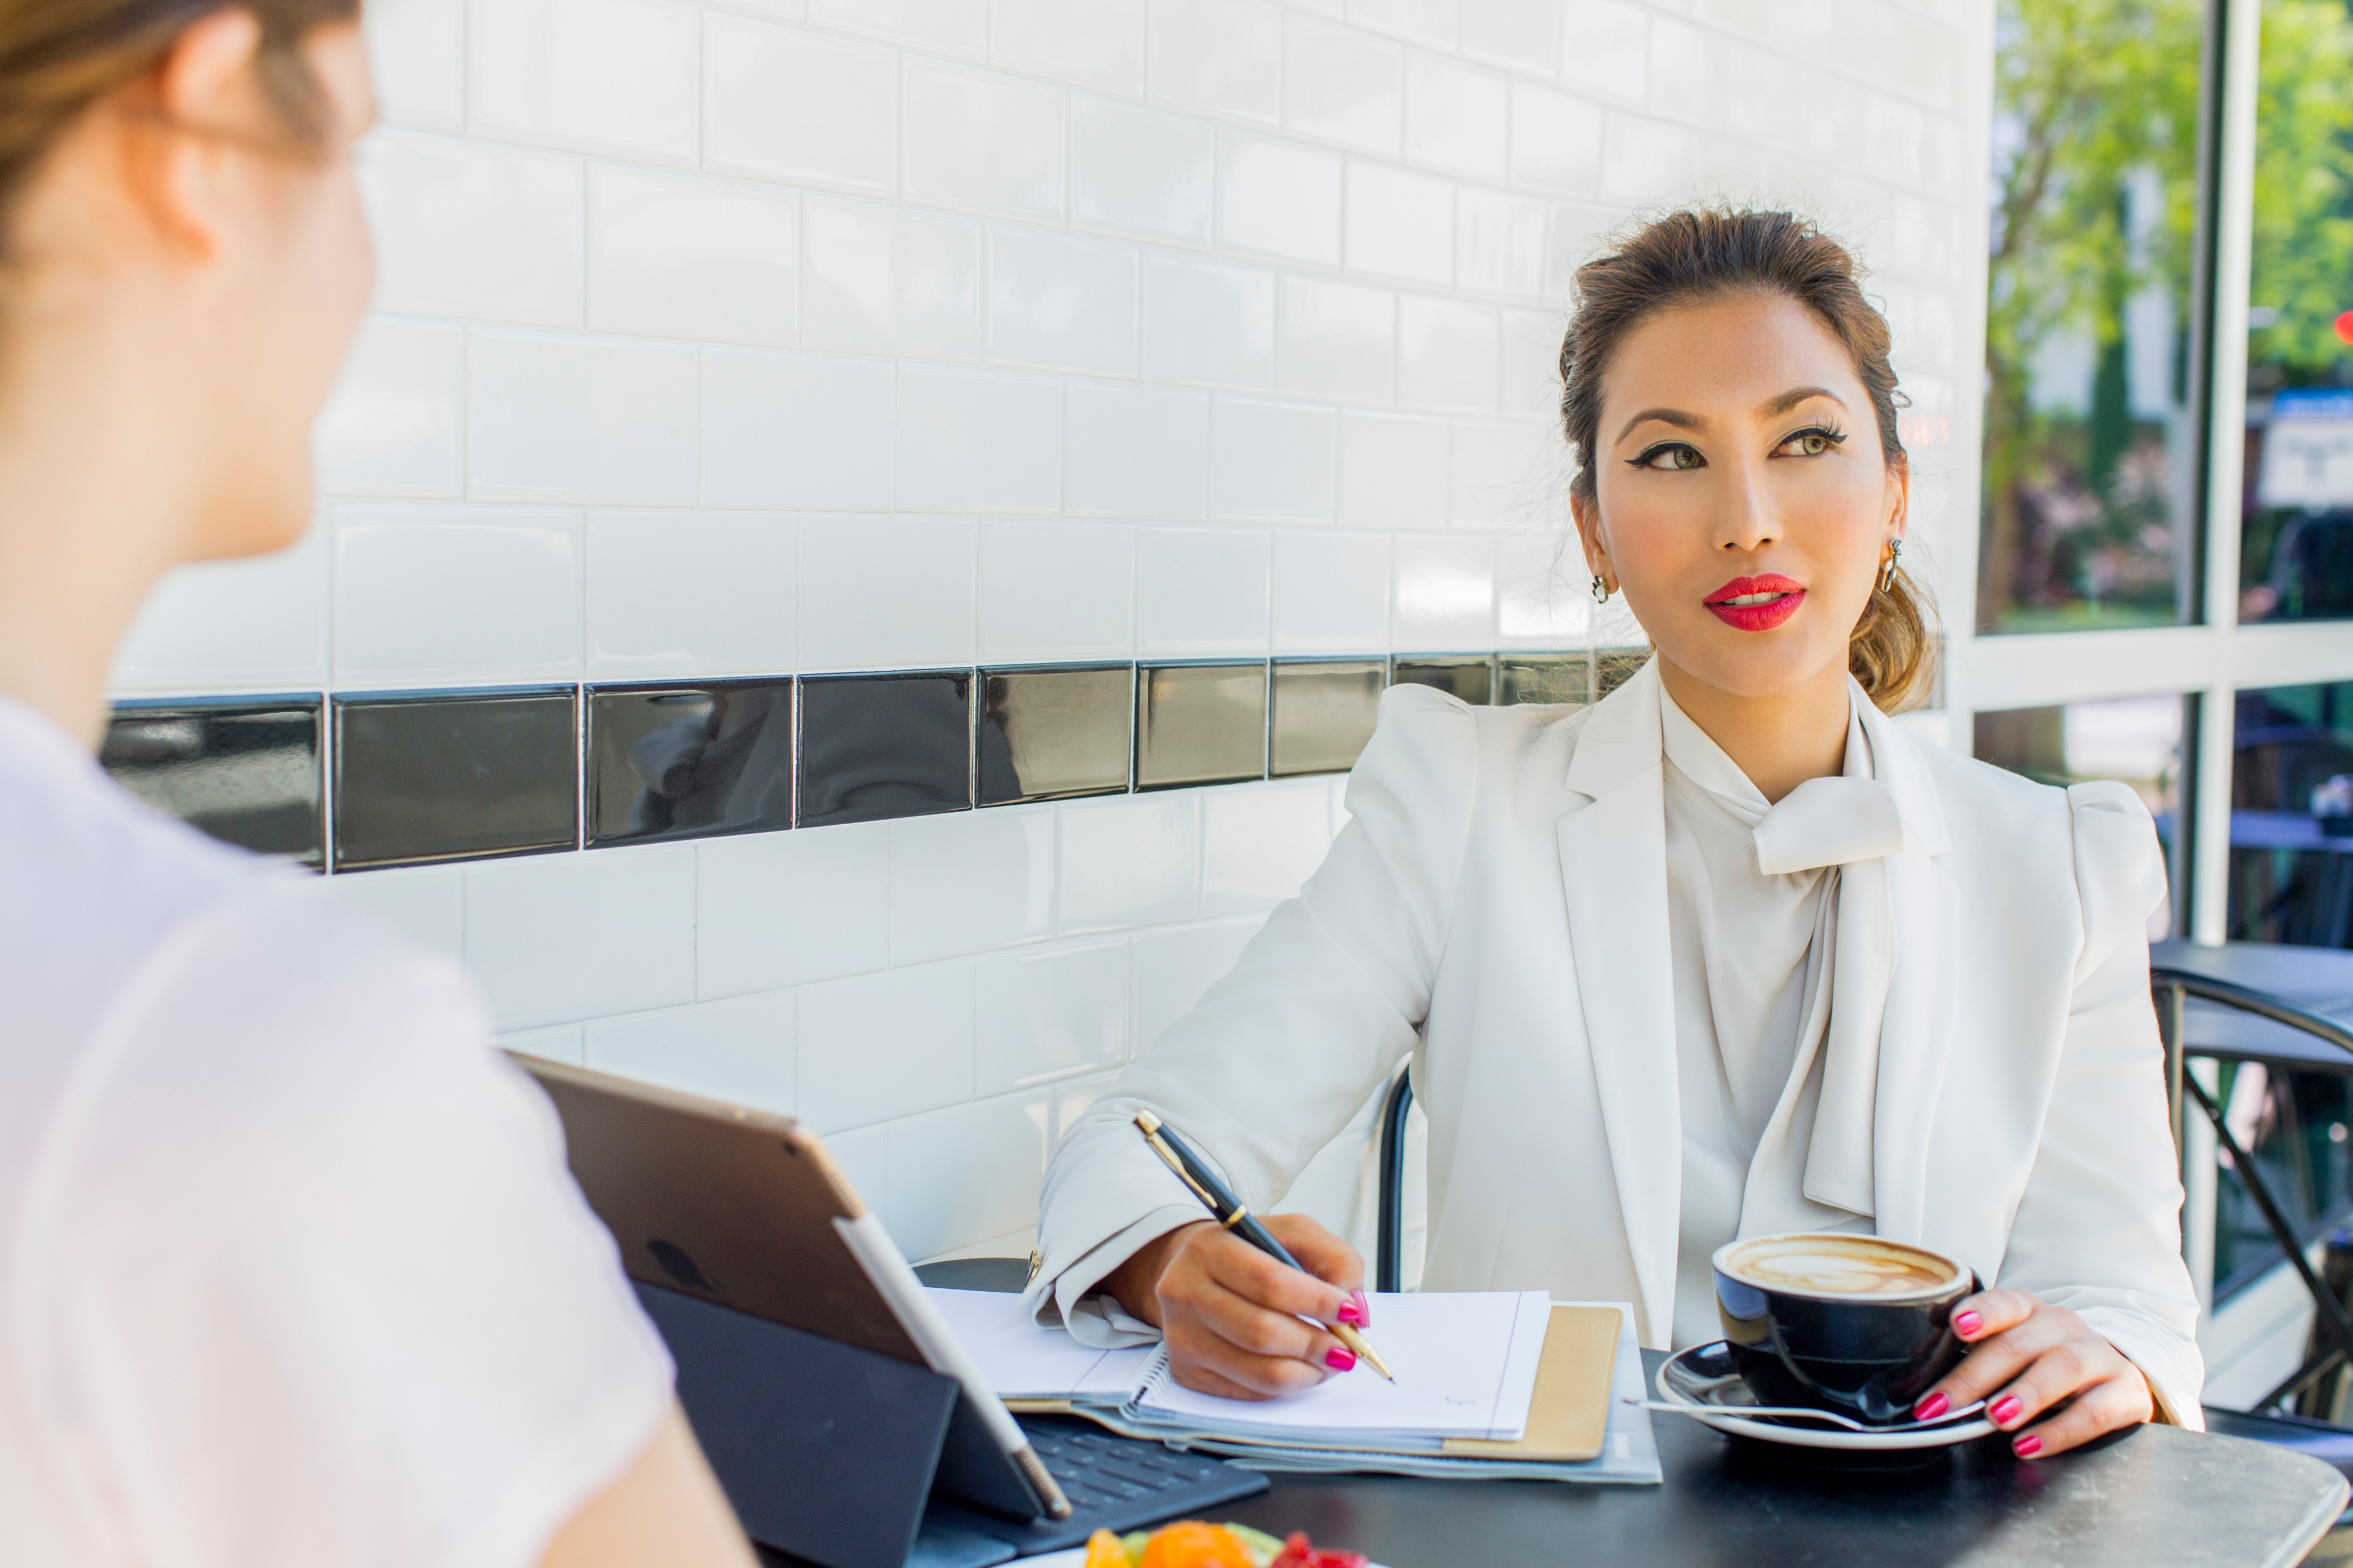 Fashionable Businesswoman in Meeting